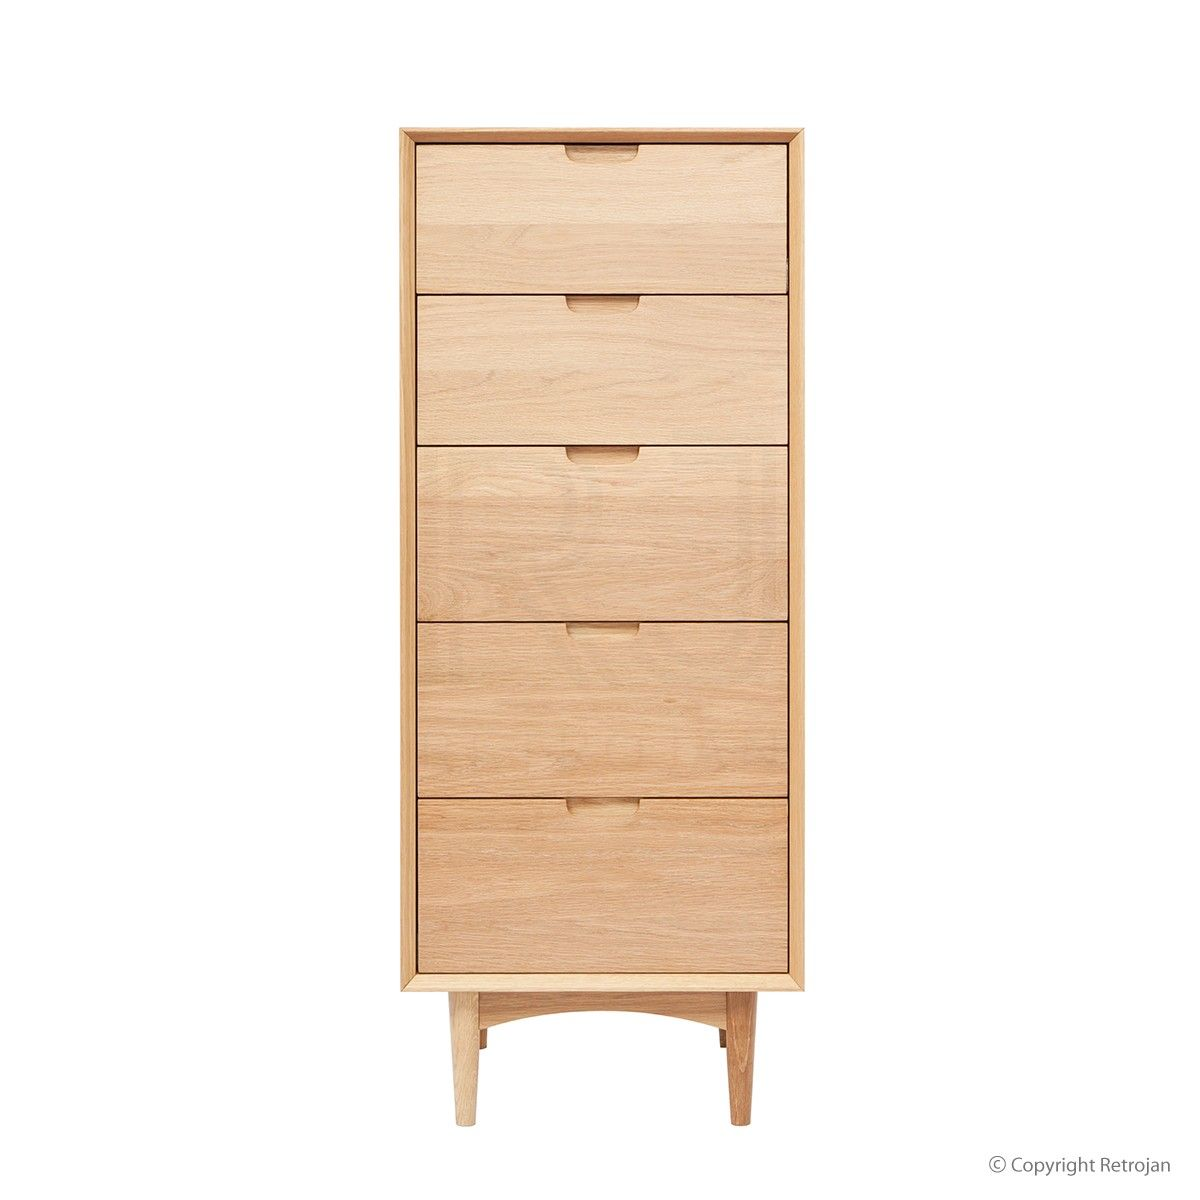 Mia 5 Drawer Chest Oak Scandinavian Style Drawers Chest Of Drawers